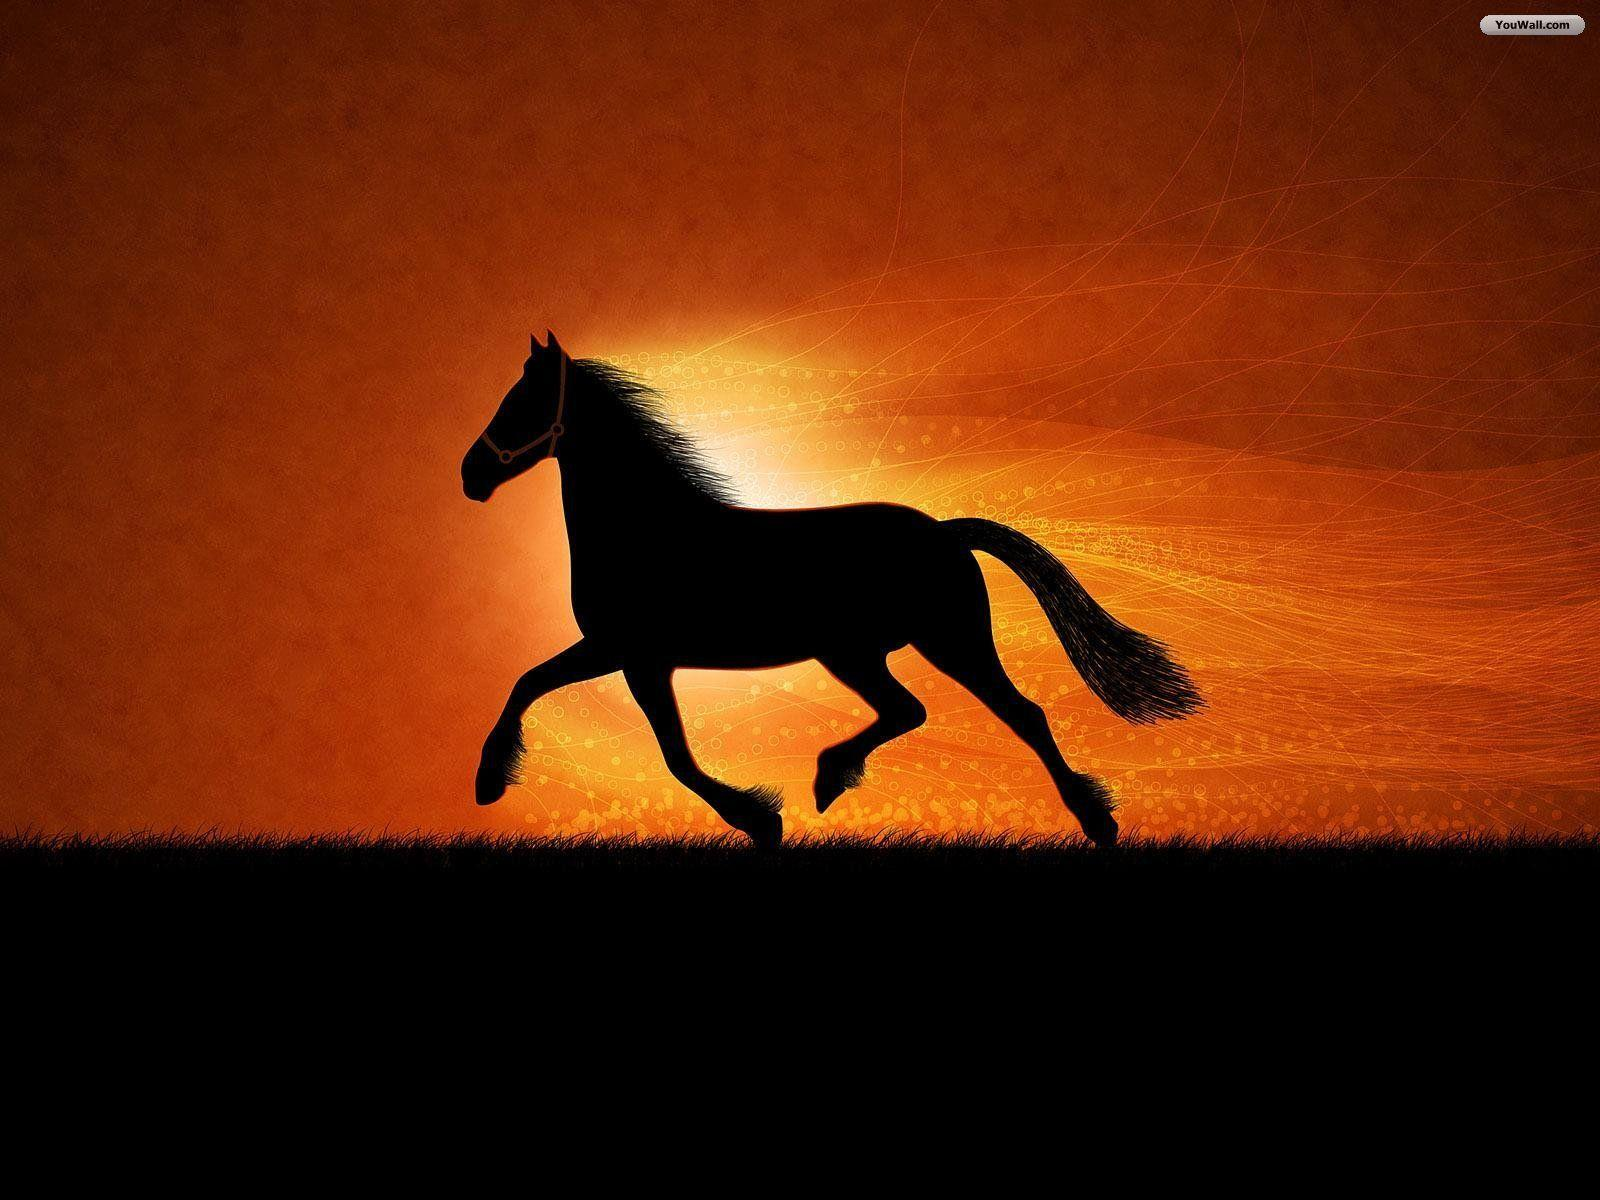 horse wallpaper awesome pair - photo #37